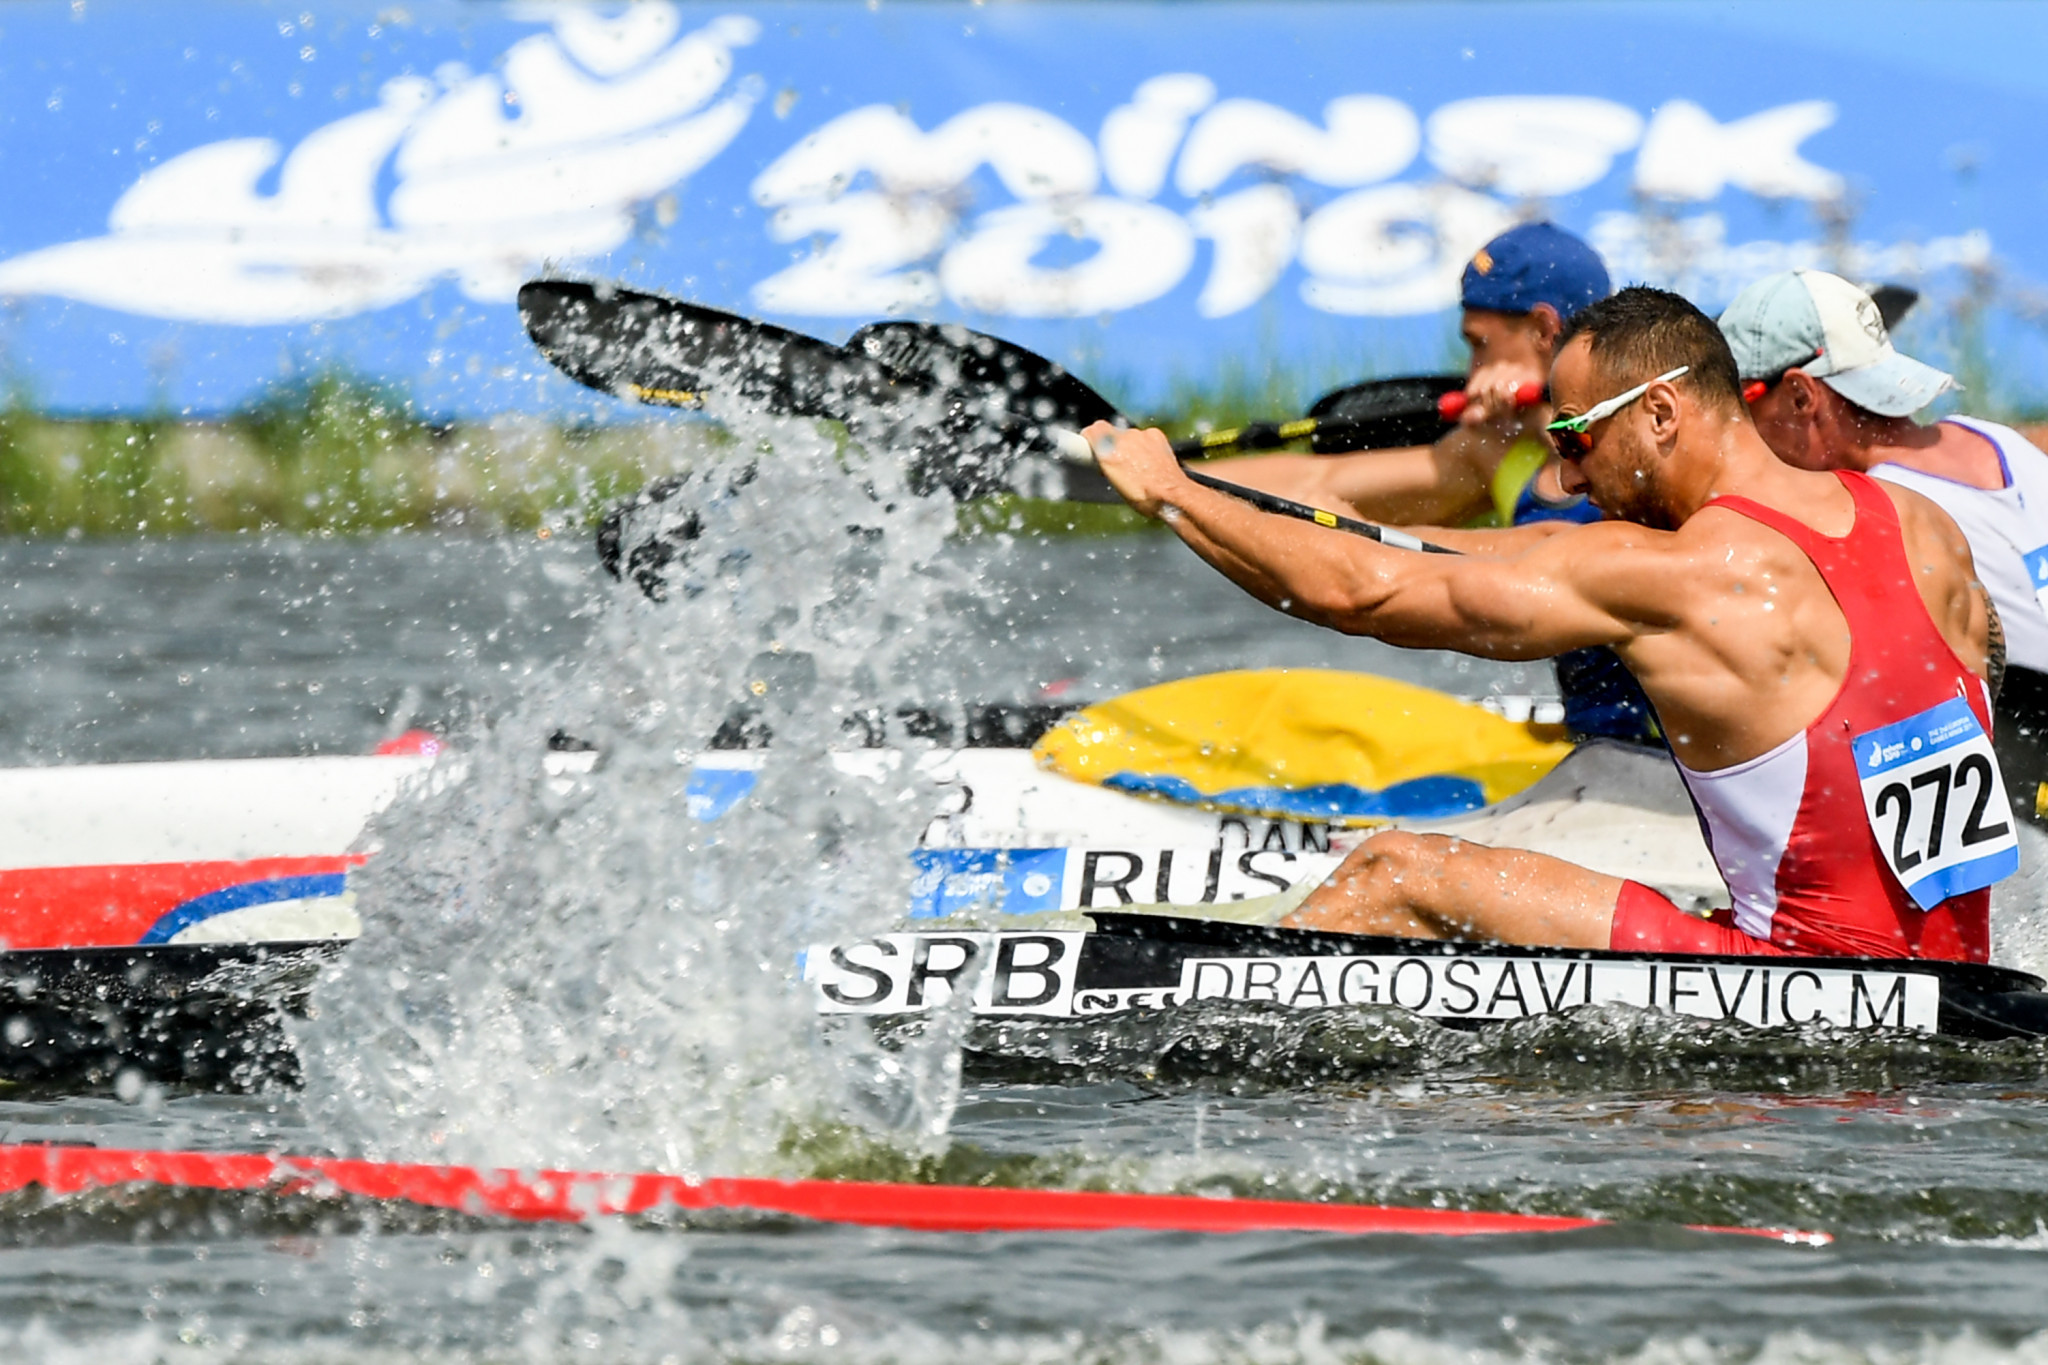 ECA urge European Games organisers to add canoe sprint to Kraków 2023 programme